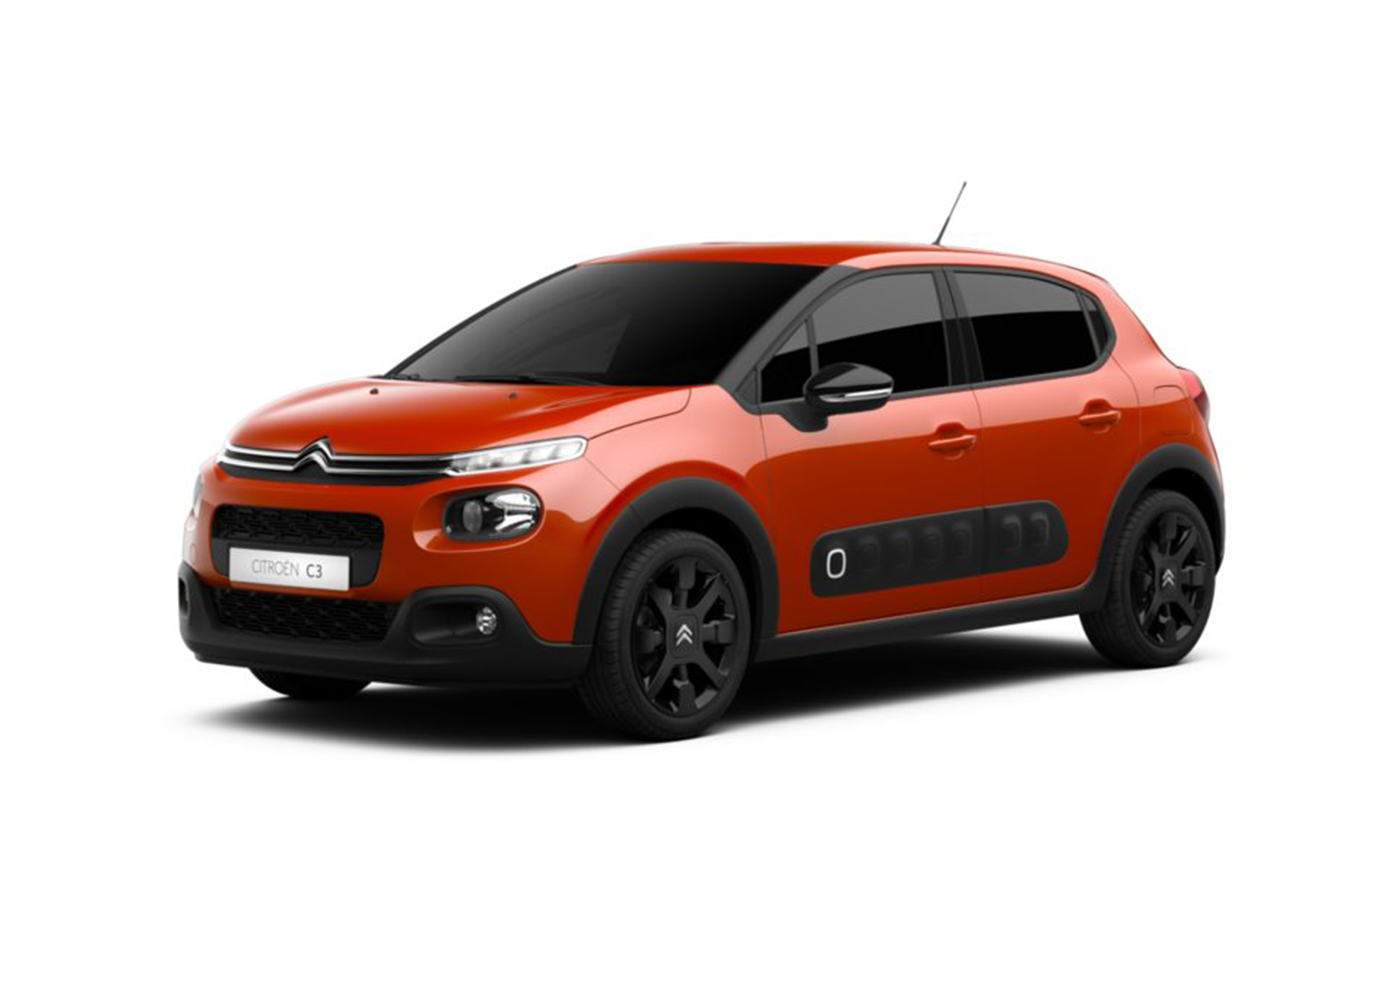 citroen c3 puretech 82 shine orange power km0 a soli 14300 su miacar wnh2f. Black Bedroom Furniture Sets. Home Design Ideas